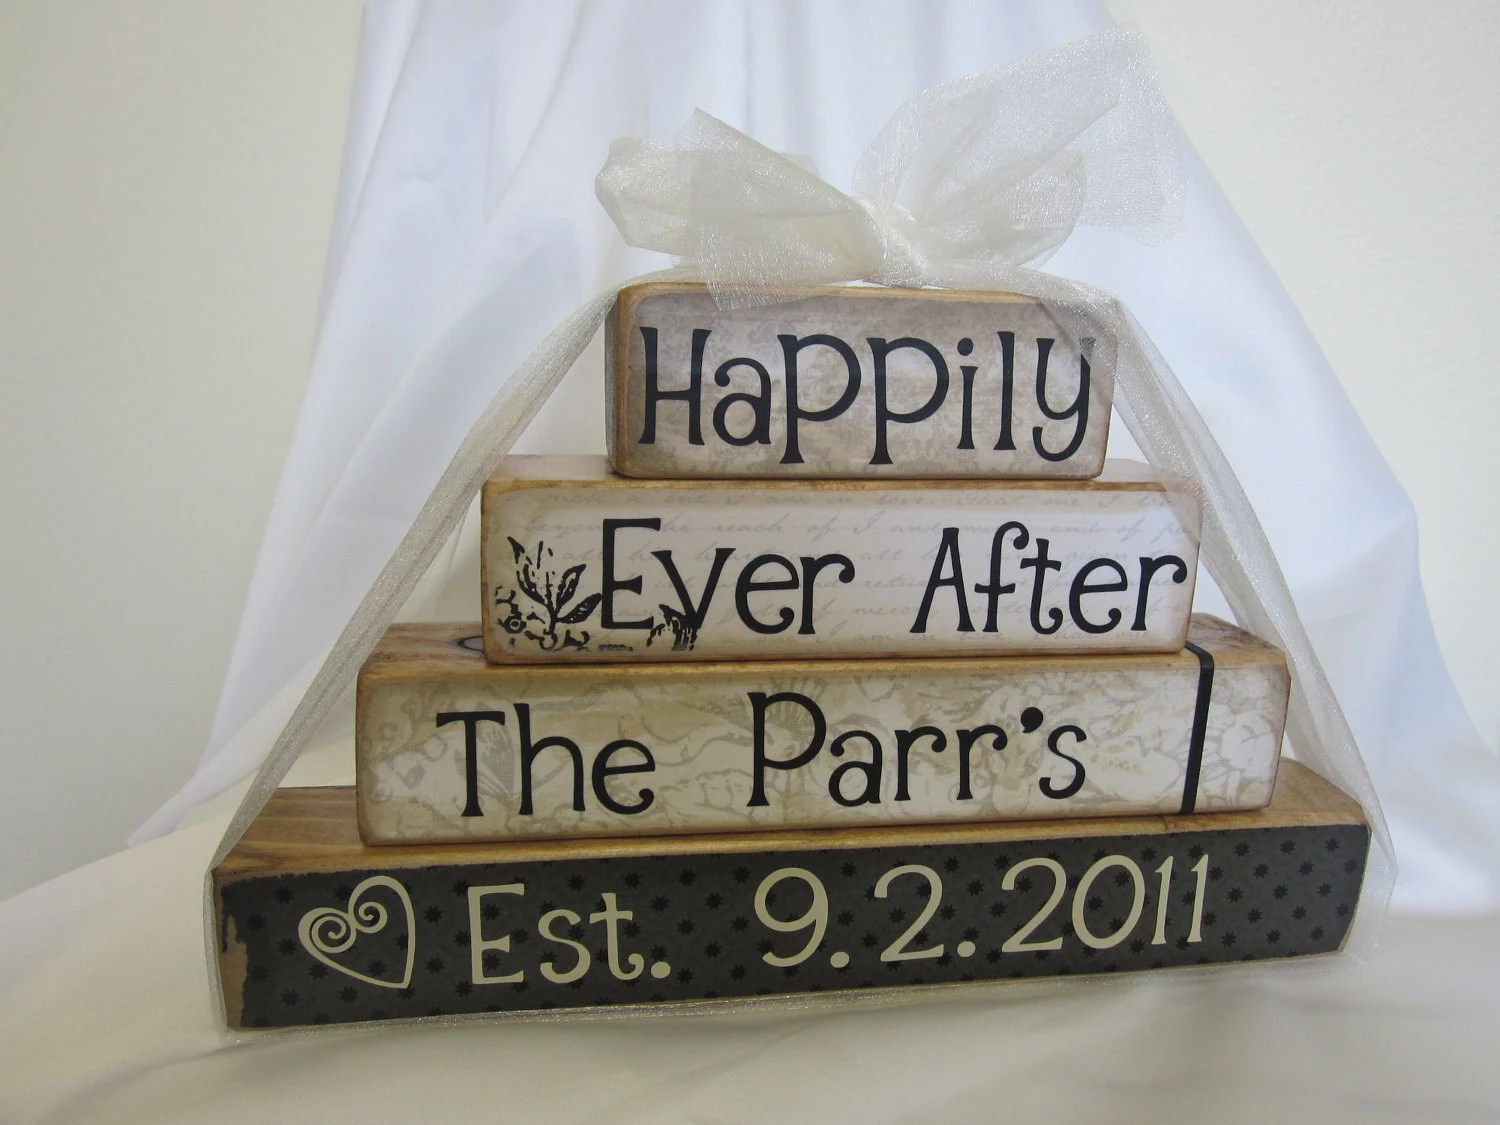 Happily Ever After wooden blocks for wedding or gift